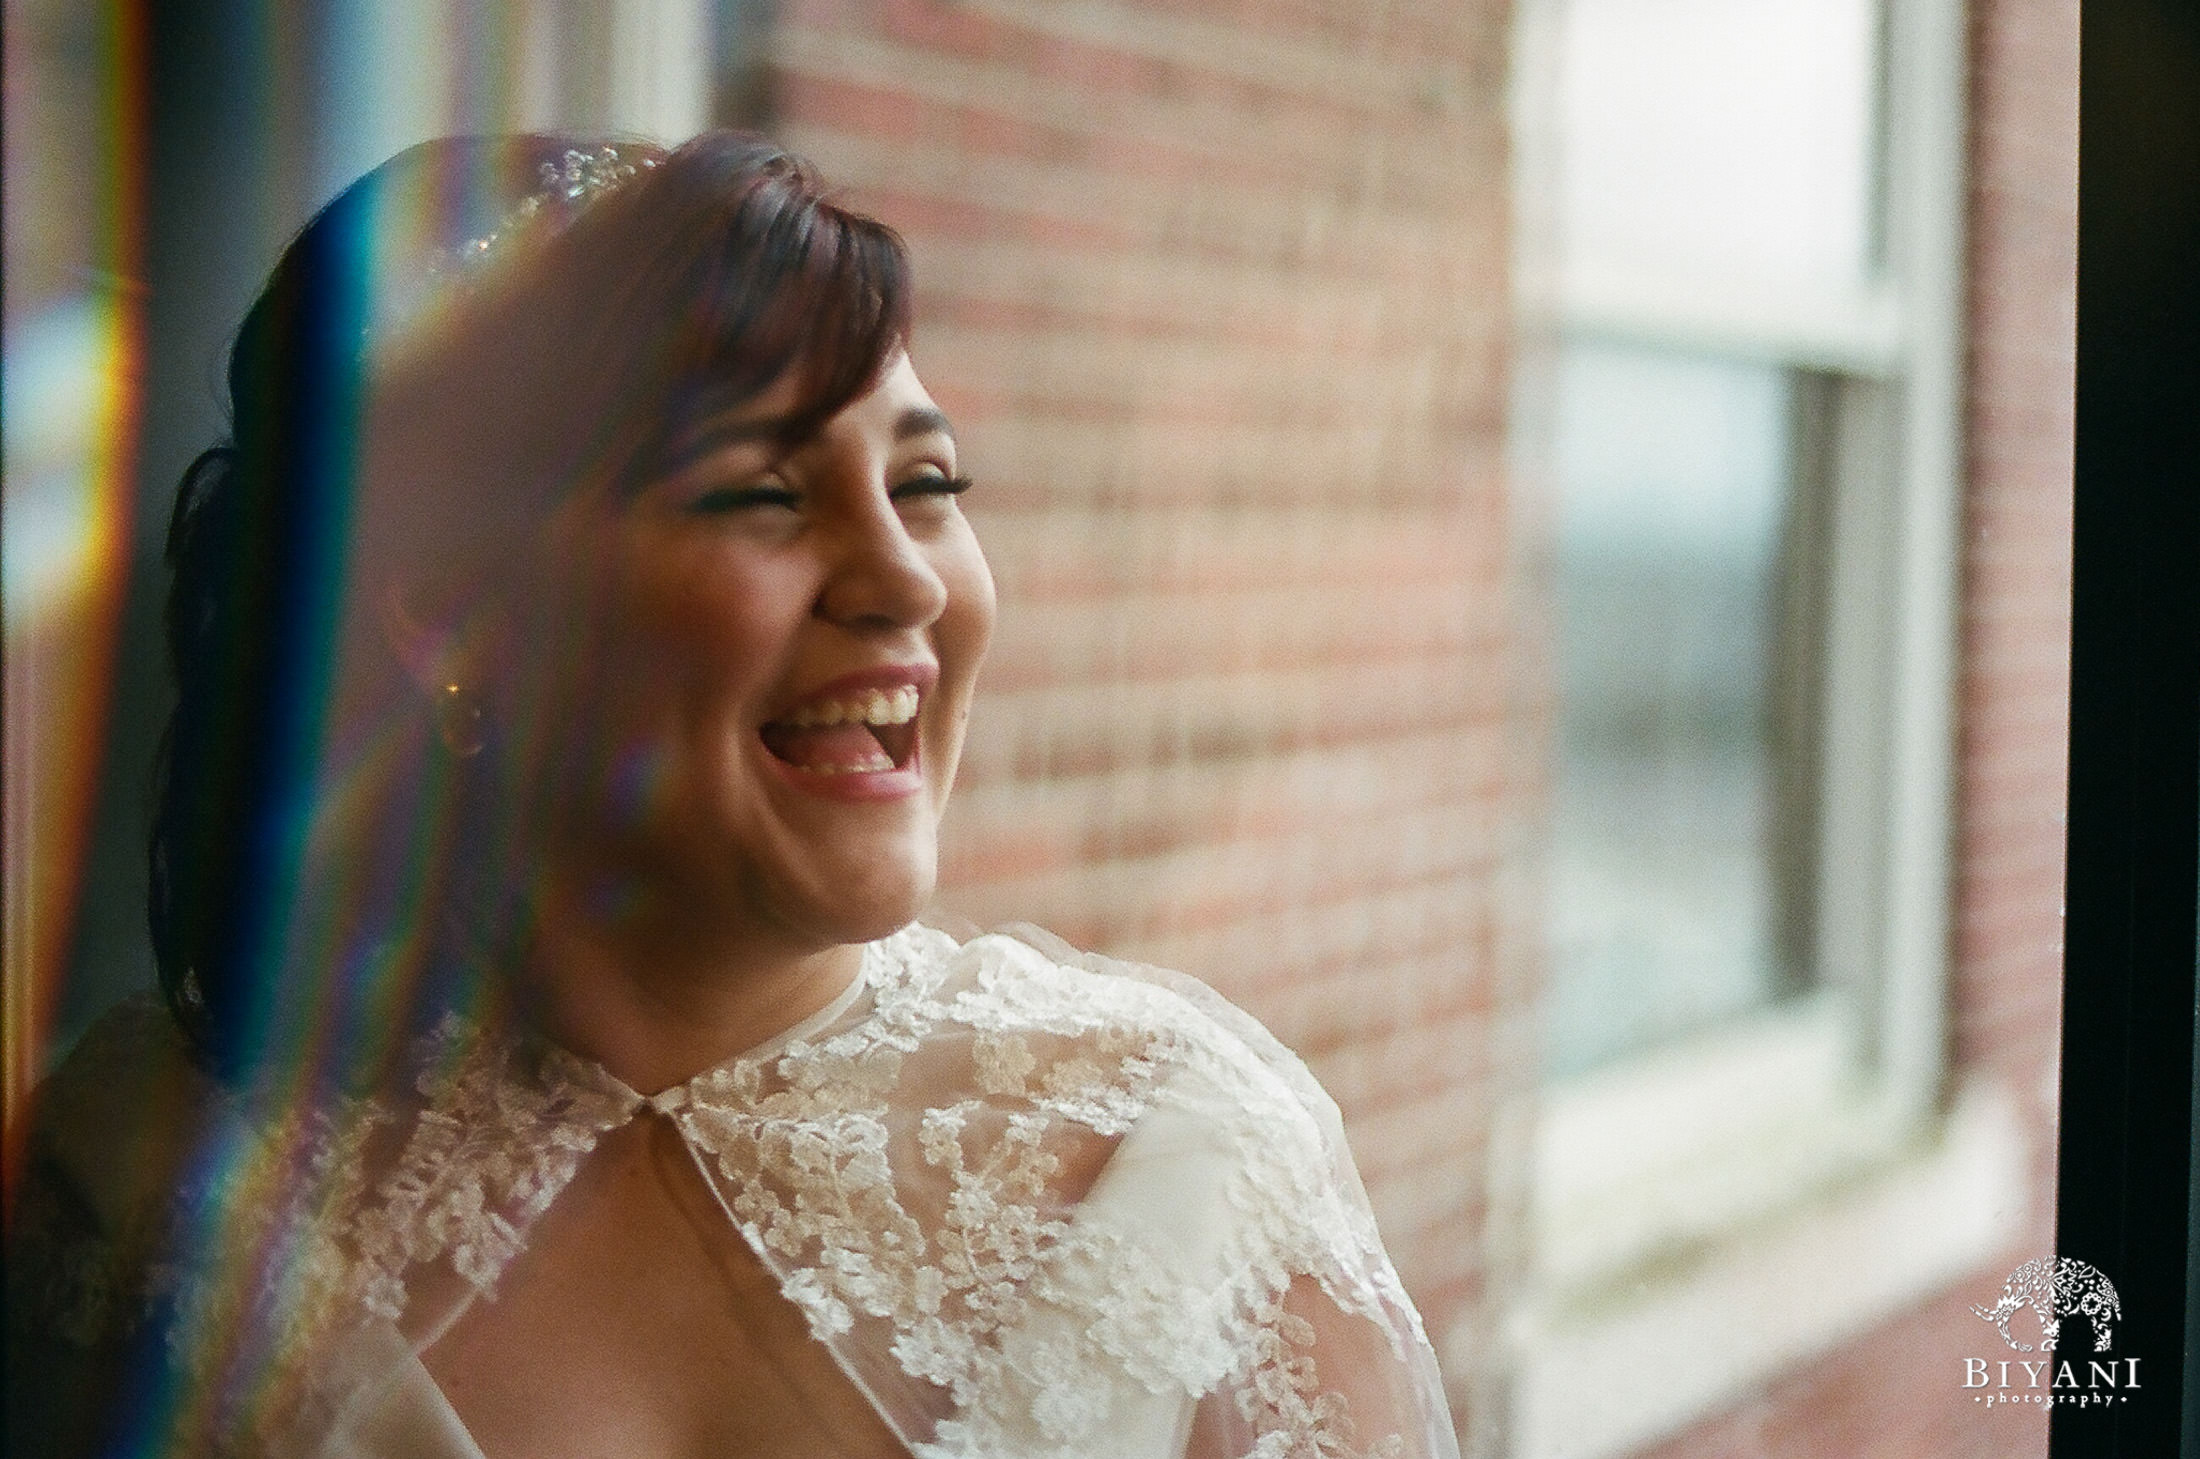 The Bride's gorgeous smile, while she awaits her groom for their First Look